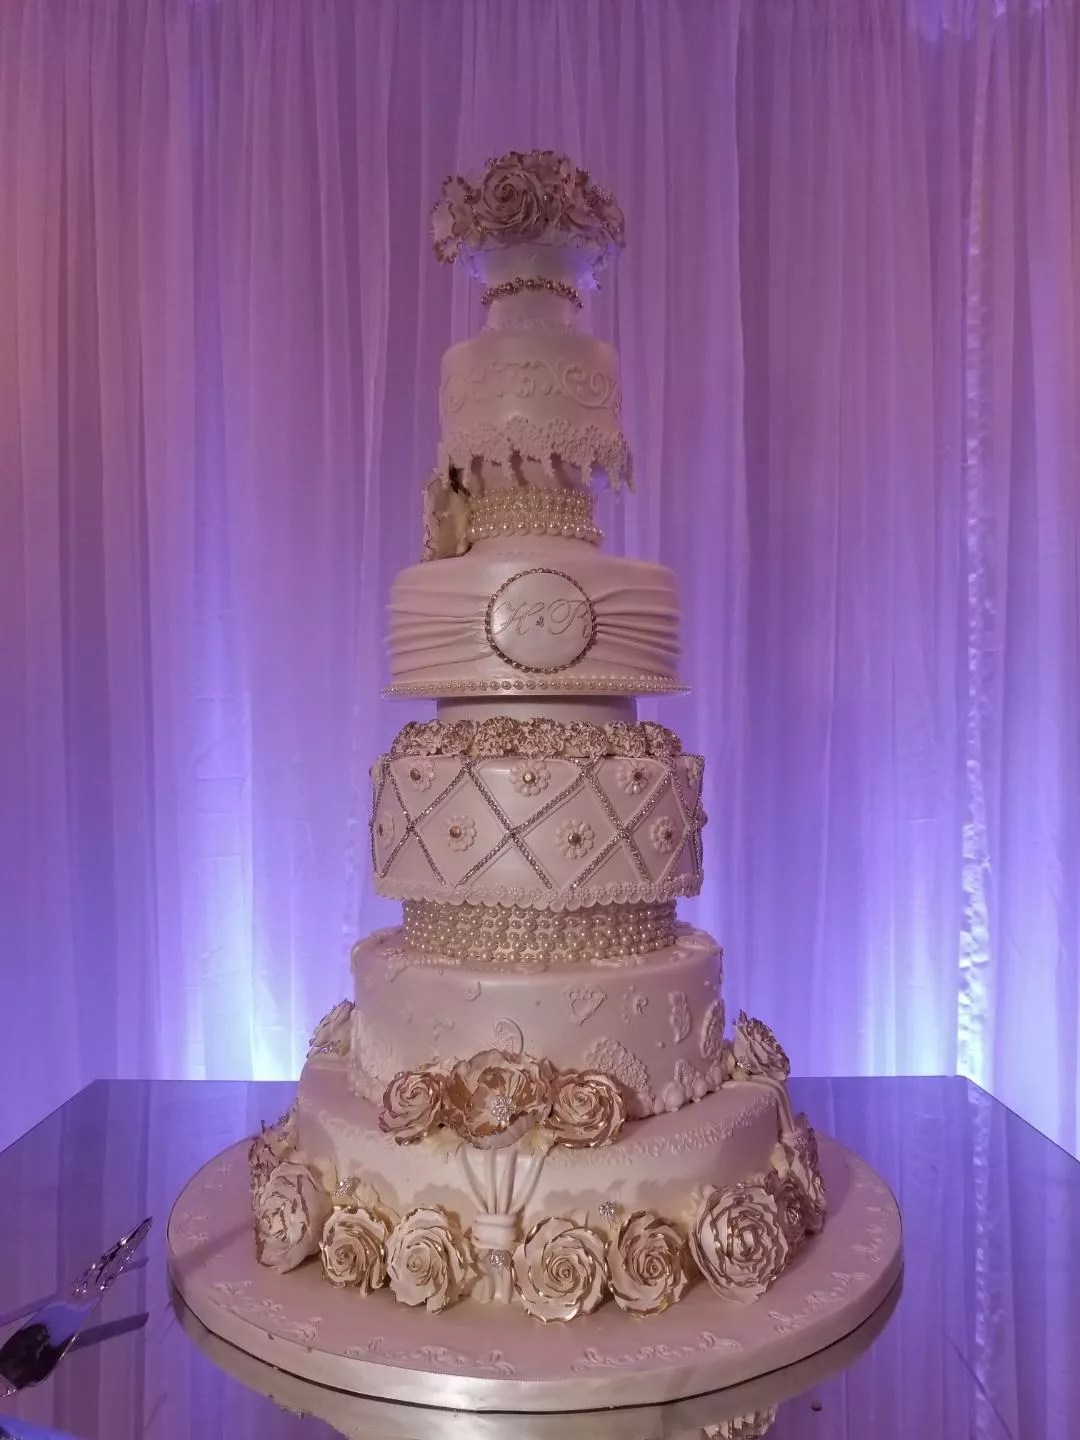 Edible Designs Wedding Cakes Houston Tx